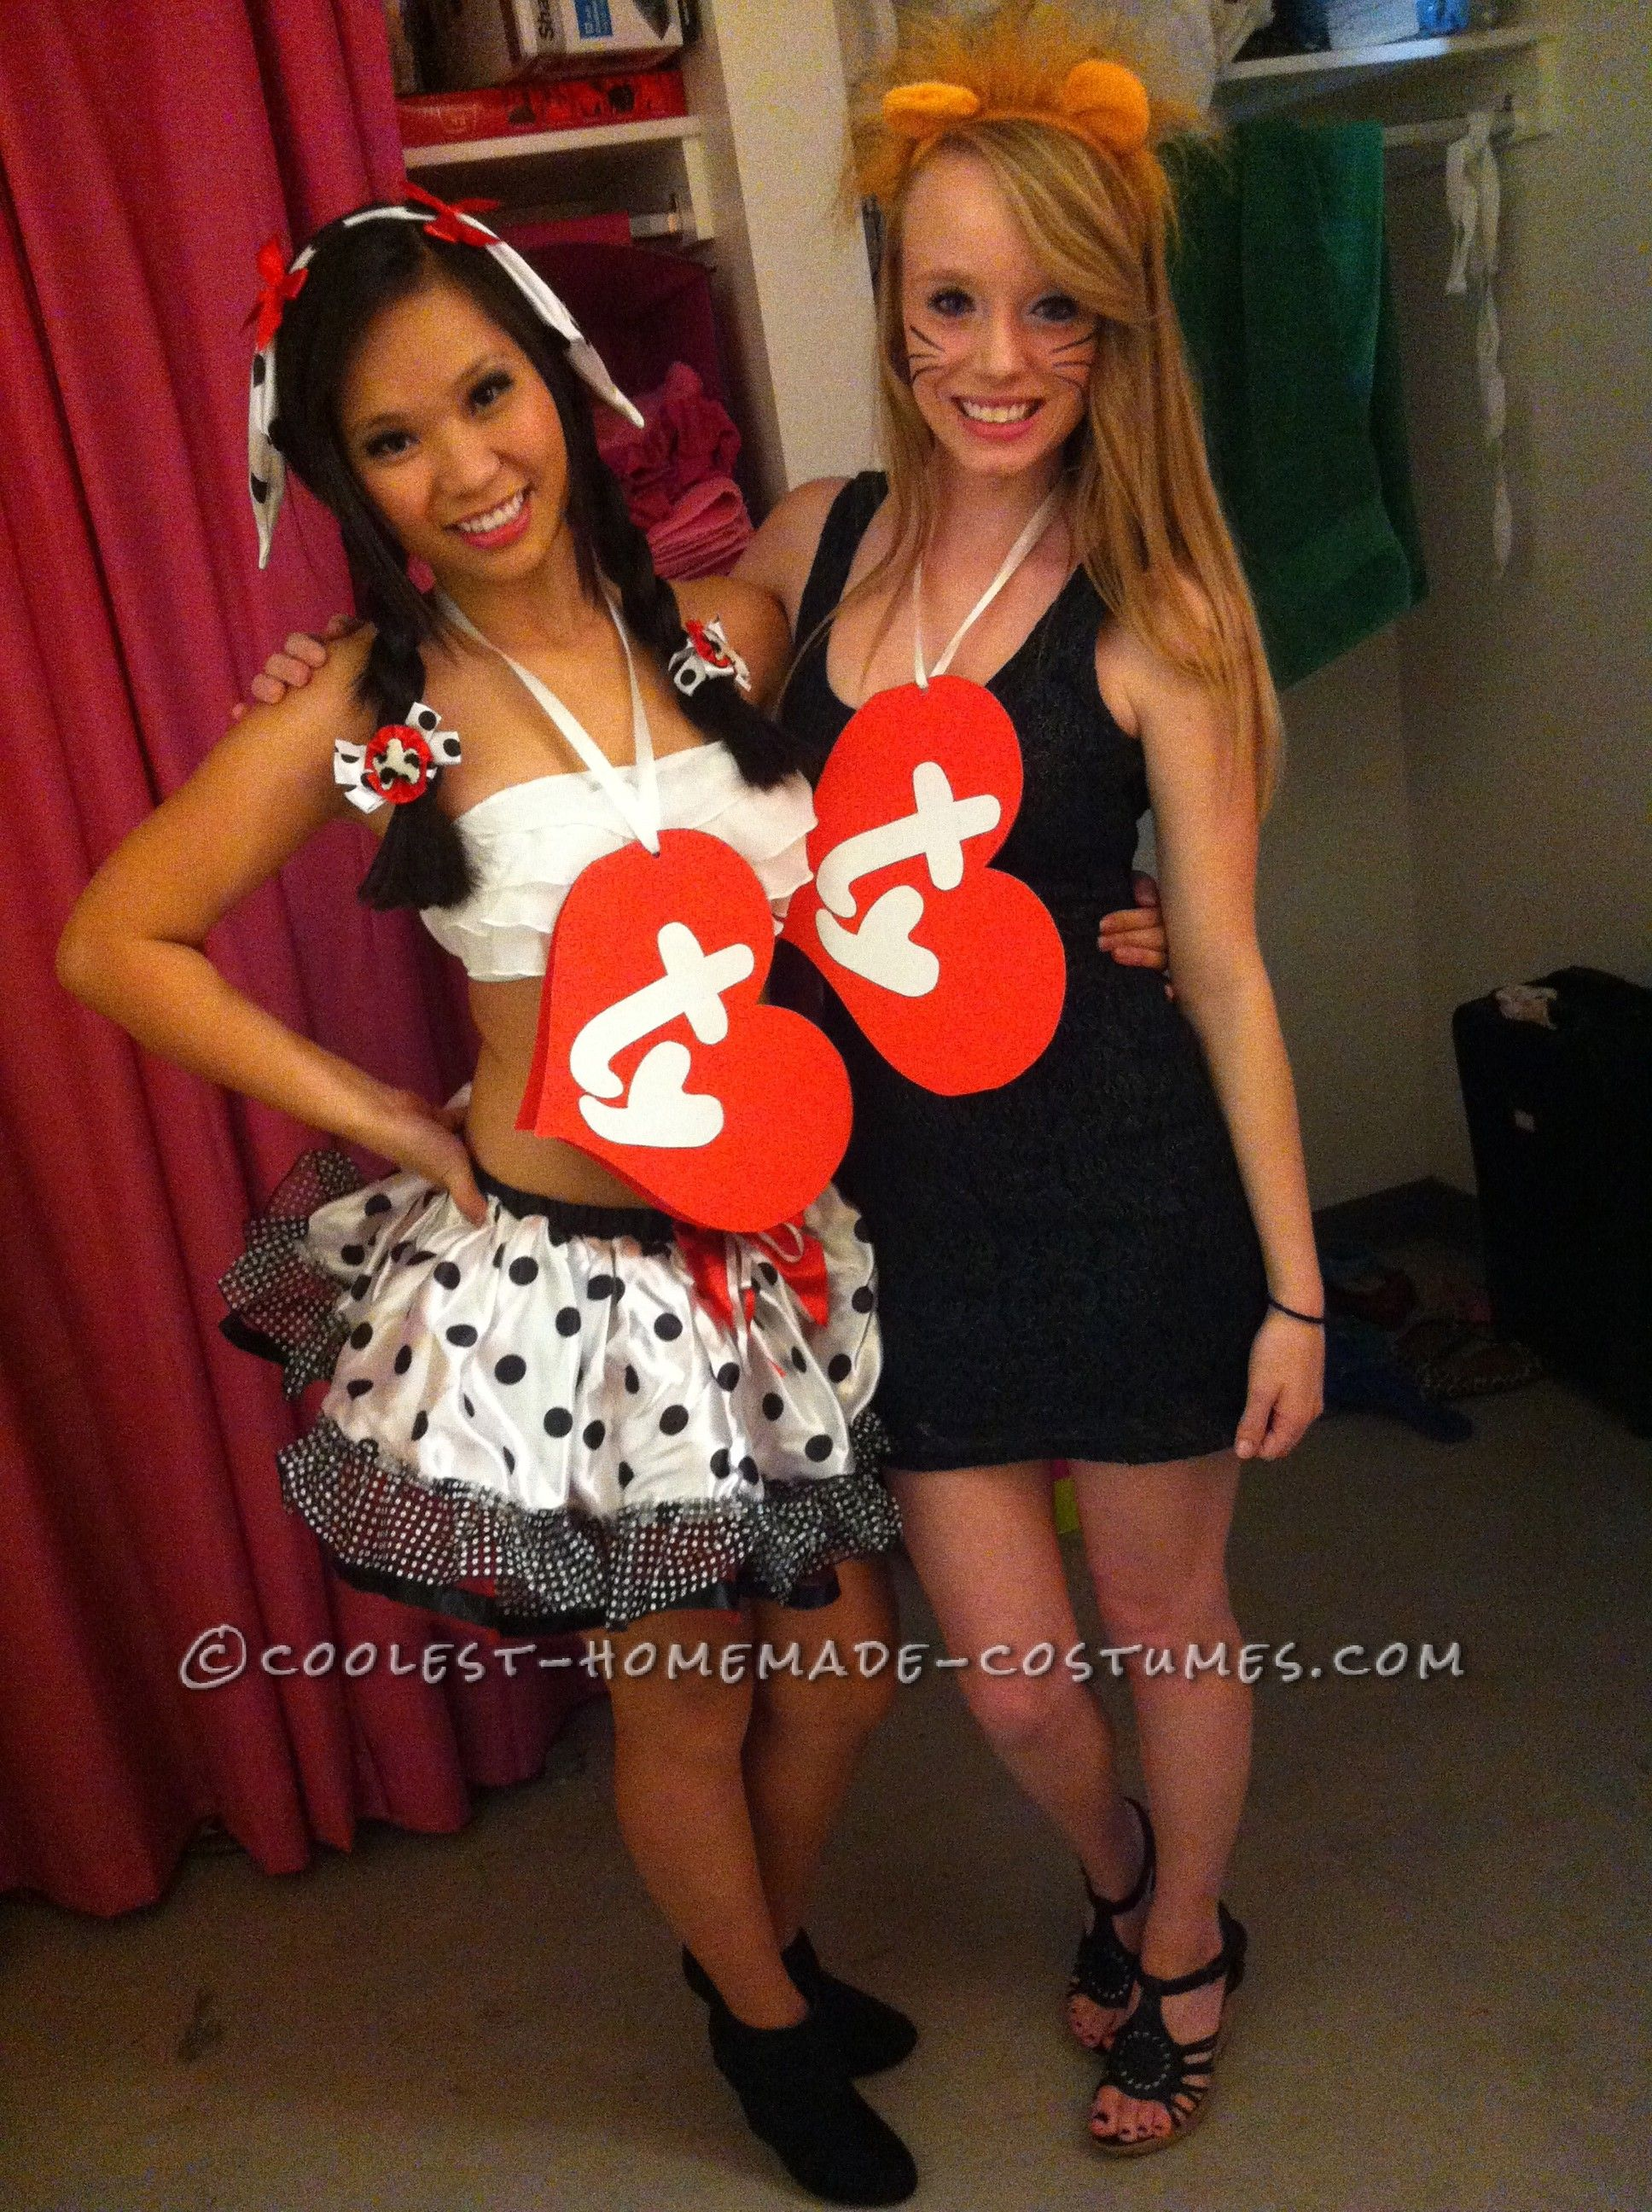 College girl diy halloween costumes the halloween costumes homemade halloween costume ideas for college students wallsviews co solutioingenieria Gallery